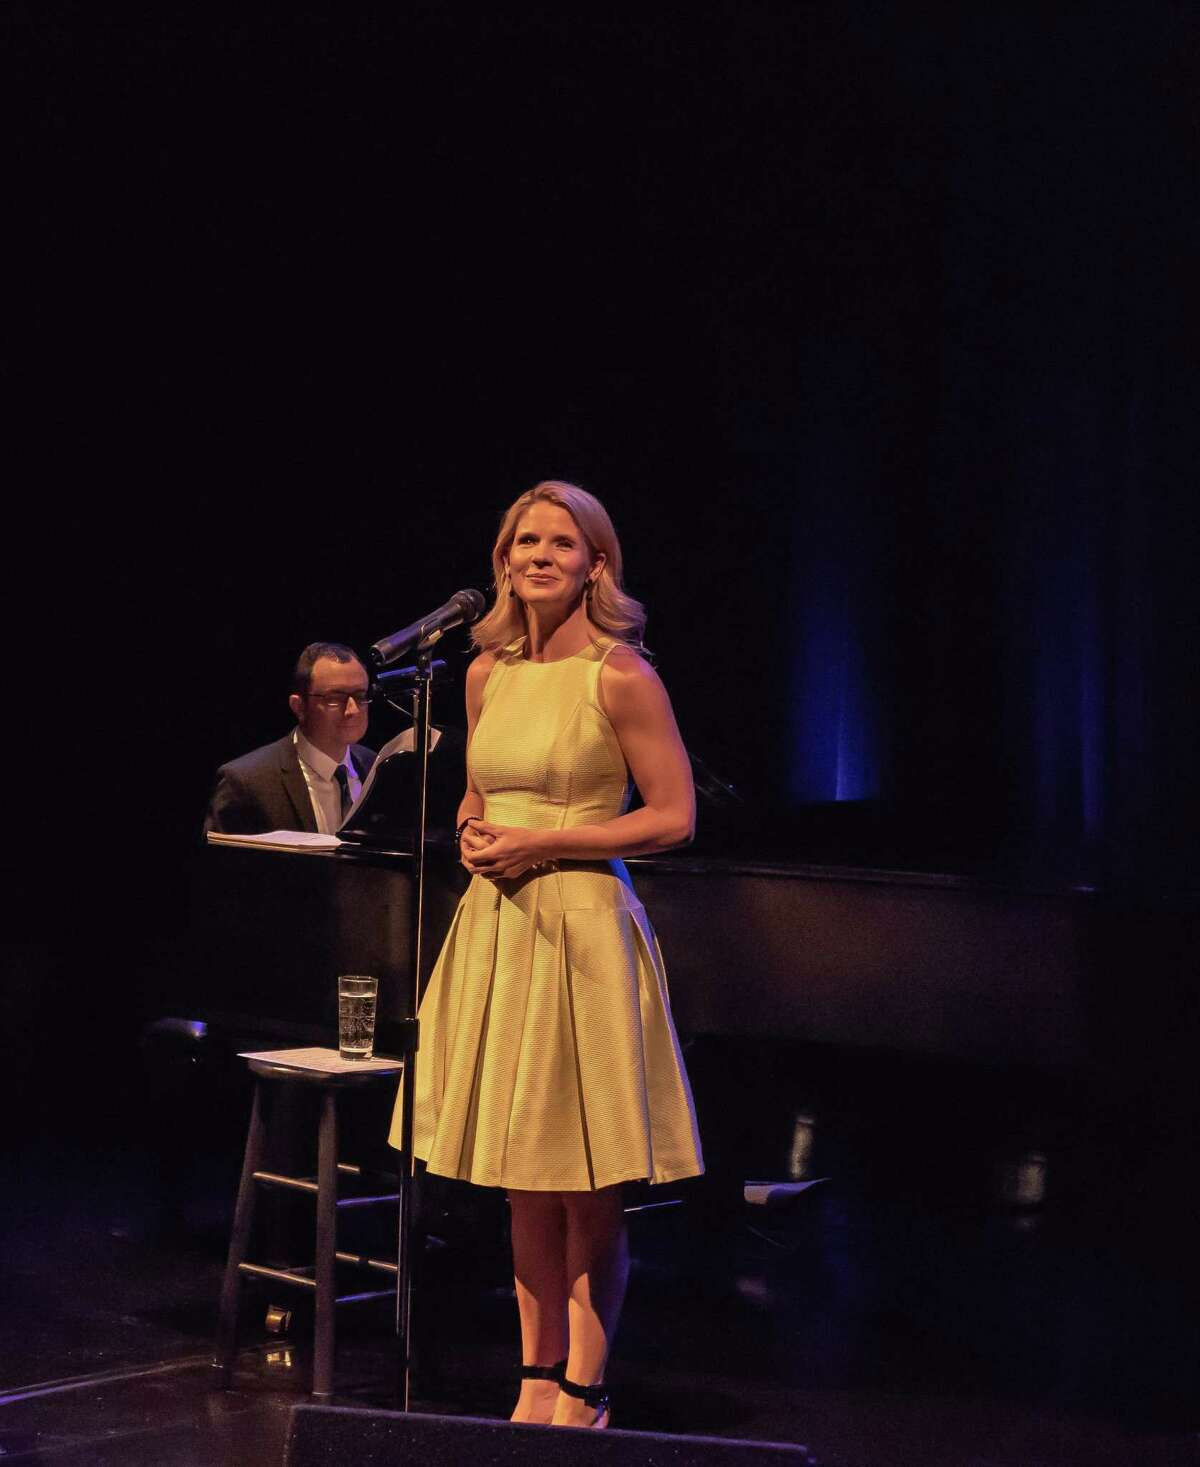 """Broadway star Kelli O'Hara, of Westport, will be among the entertainers in """"Staged at Home,"""" a virtual benefit concert for Long Wharf Theatre in New Haven, June 8. She's seen onstage here as Long Wharf Theatre's 2016 gala performer."""